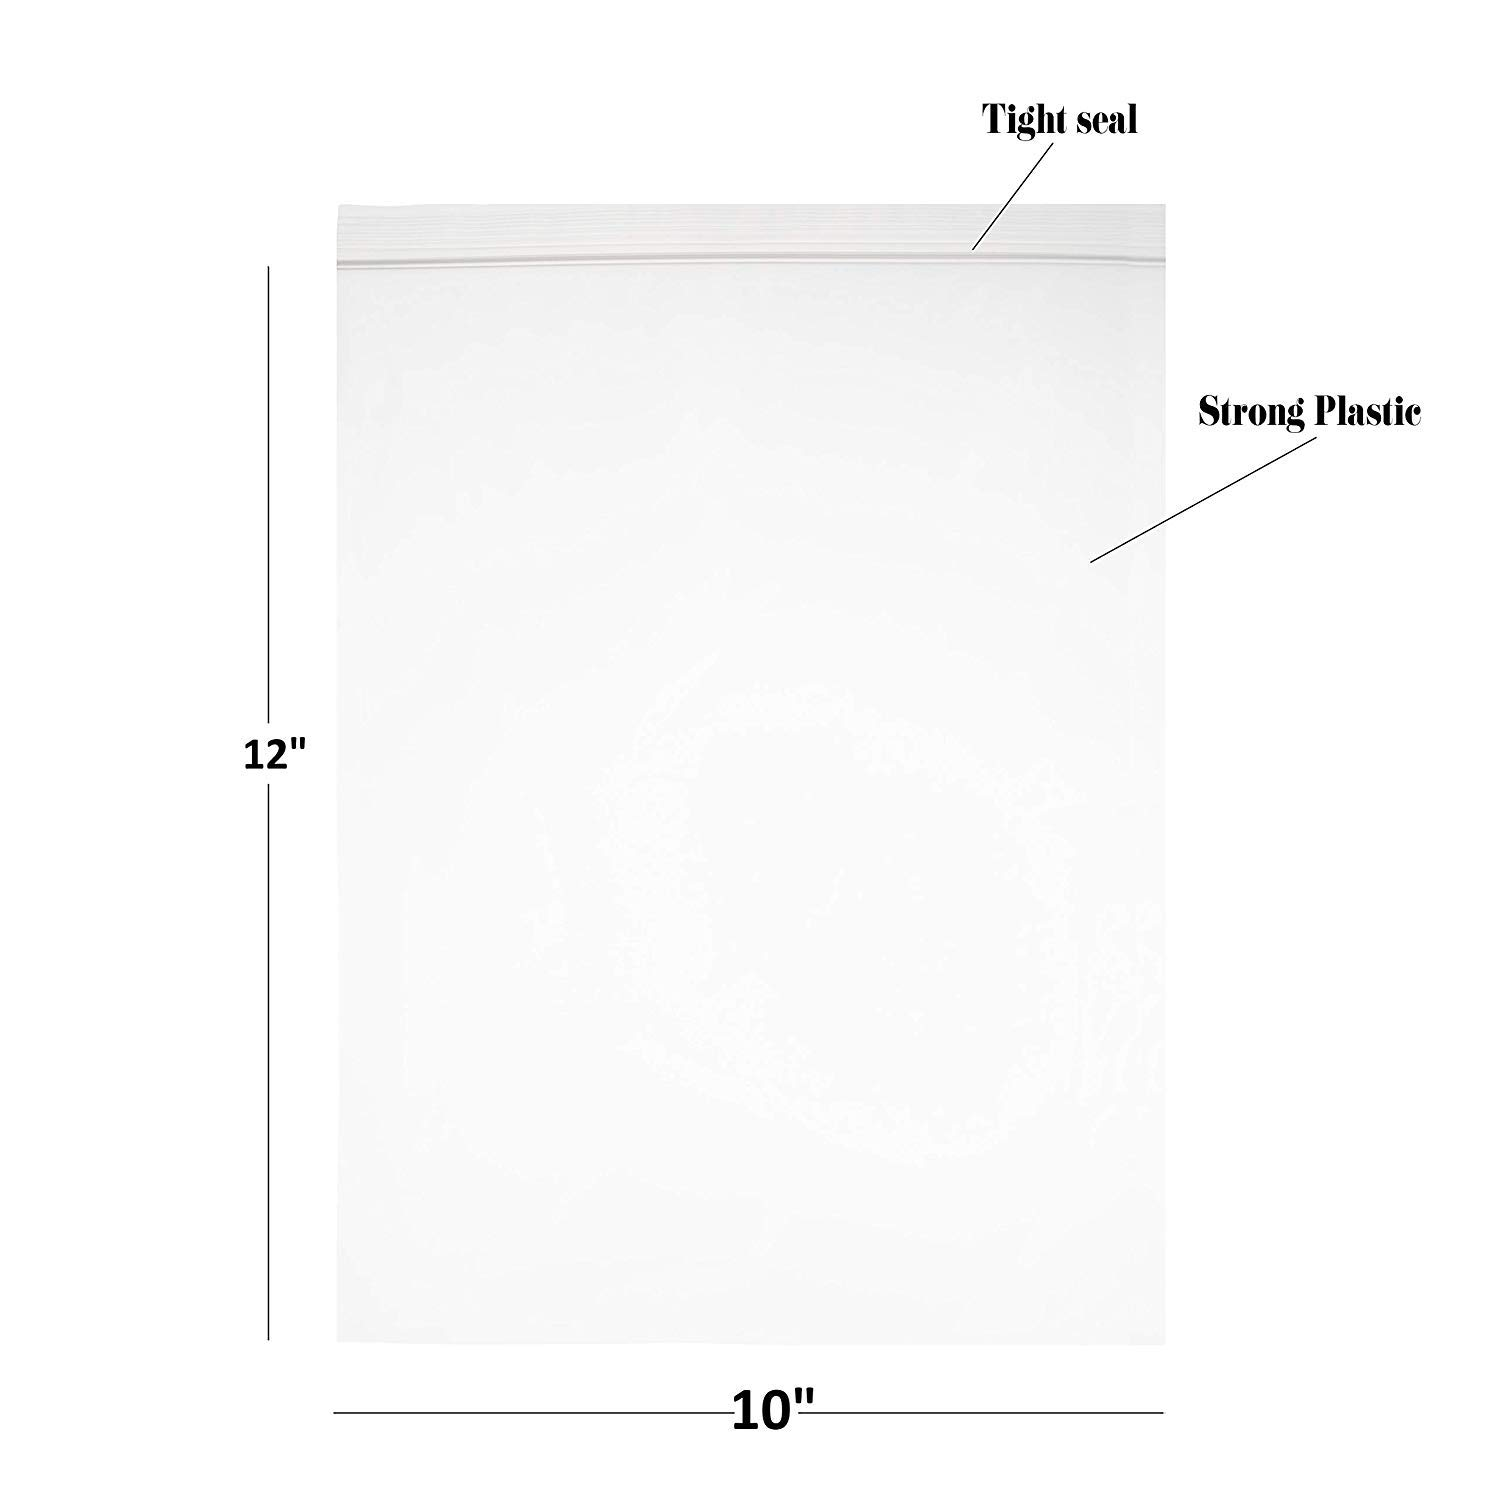 Reclosable Clear Plastic Zip Bags - by DiRose | Resealable, Strong, Thick, Sturdy, Food Safe | for Organizing, Travel, Shipping, Packaging, and Storage | 10X12 | 1000 Pack by DiRose